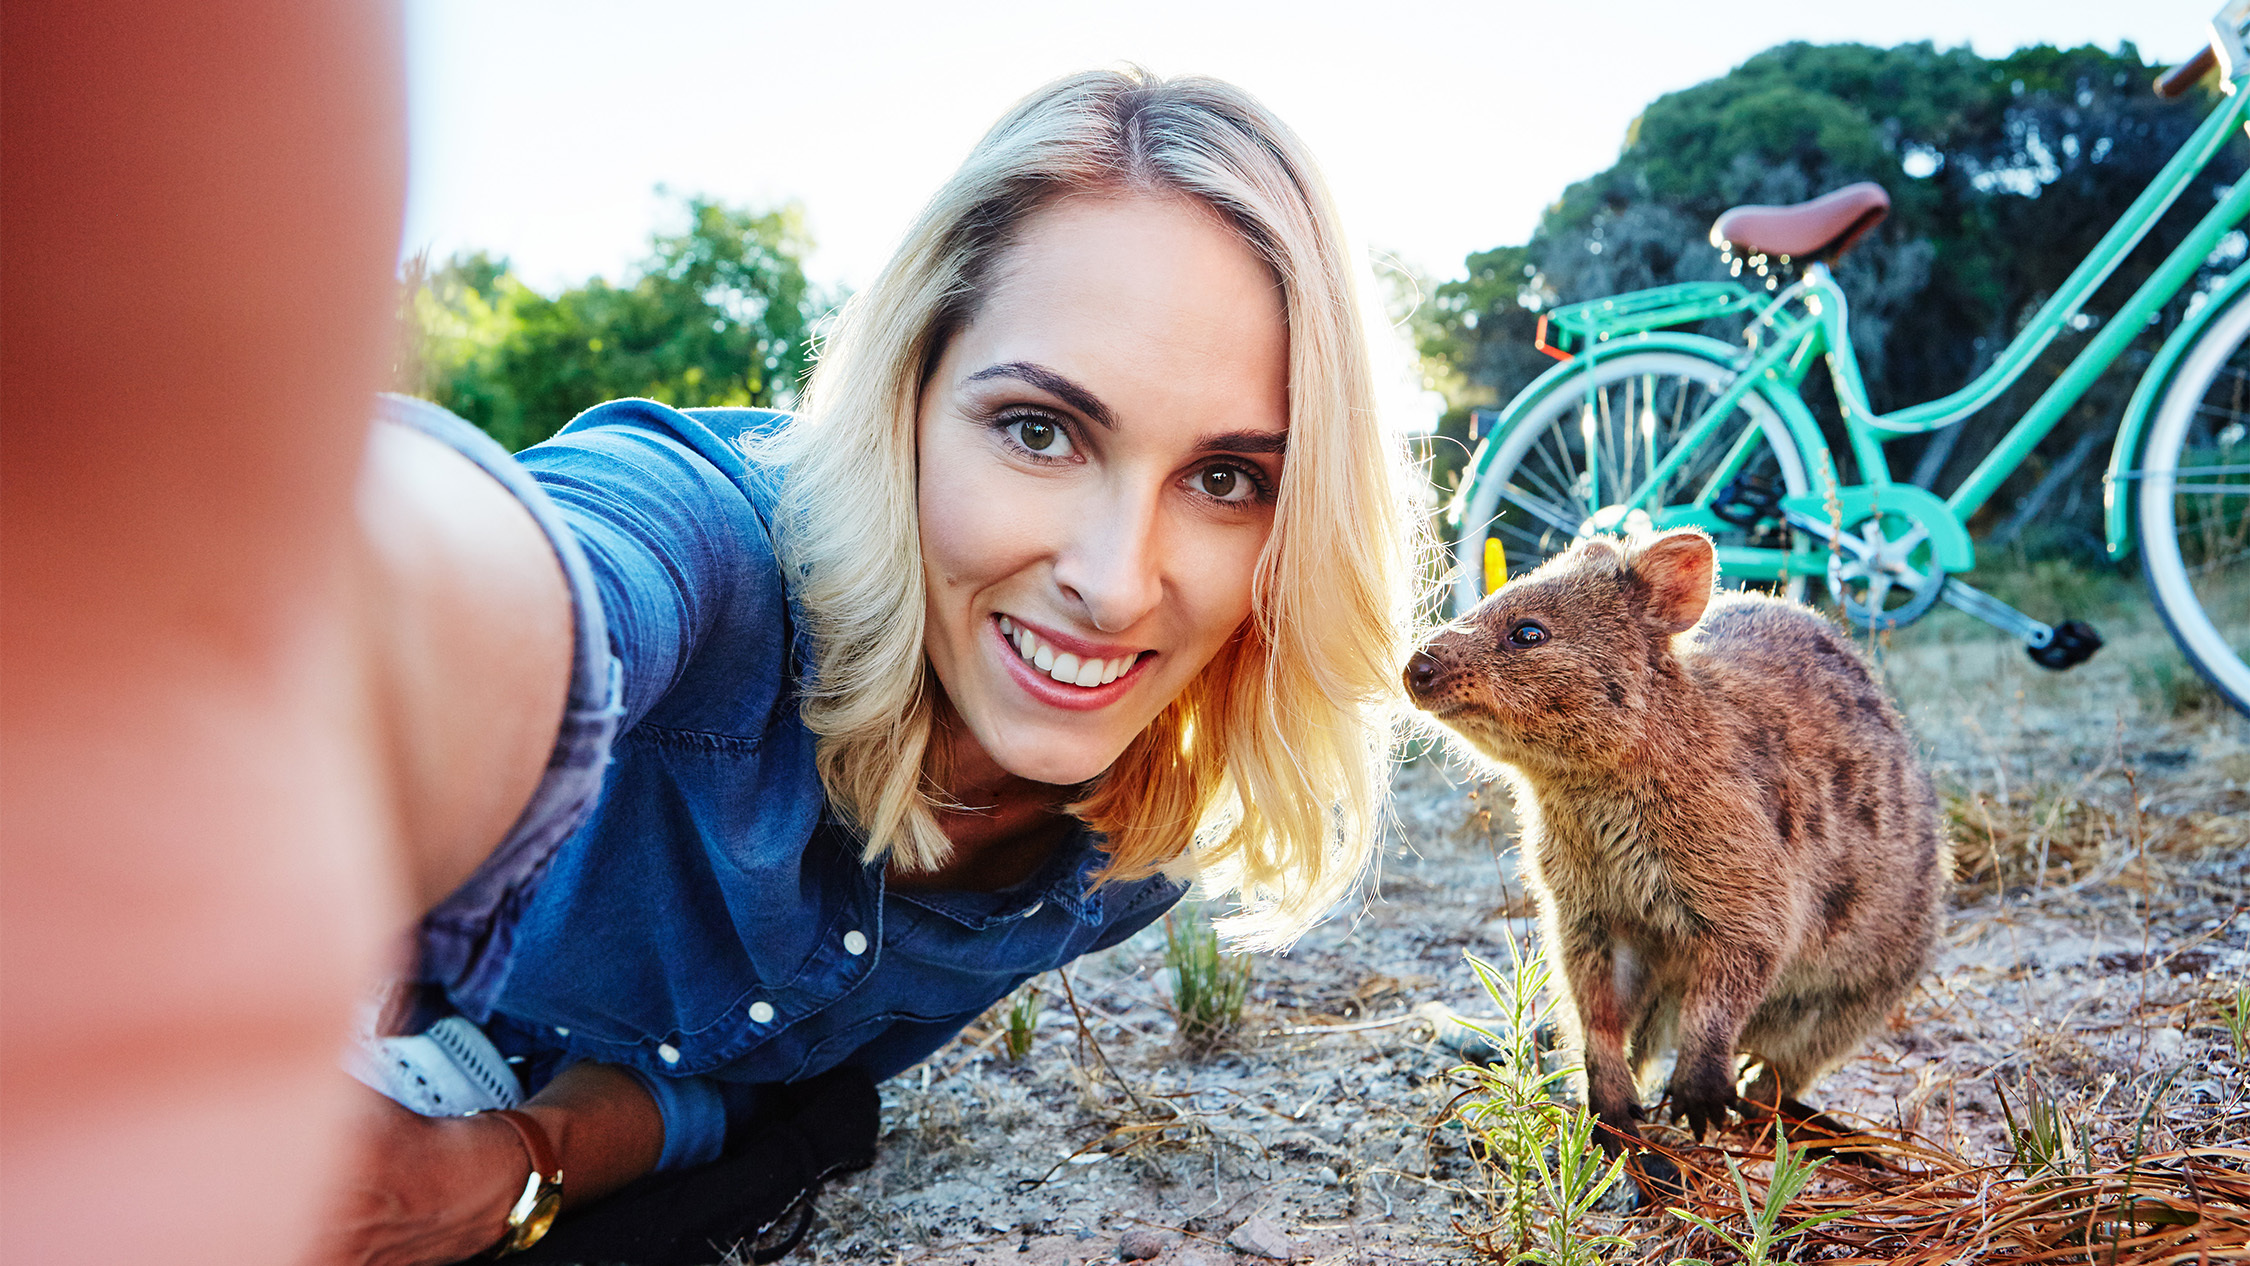 Play: Selfie with a quokka